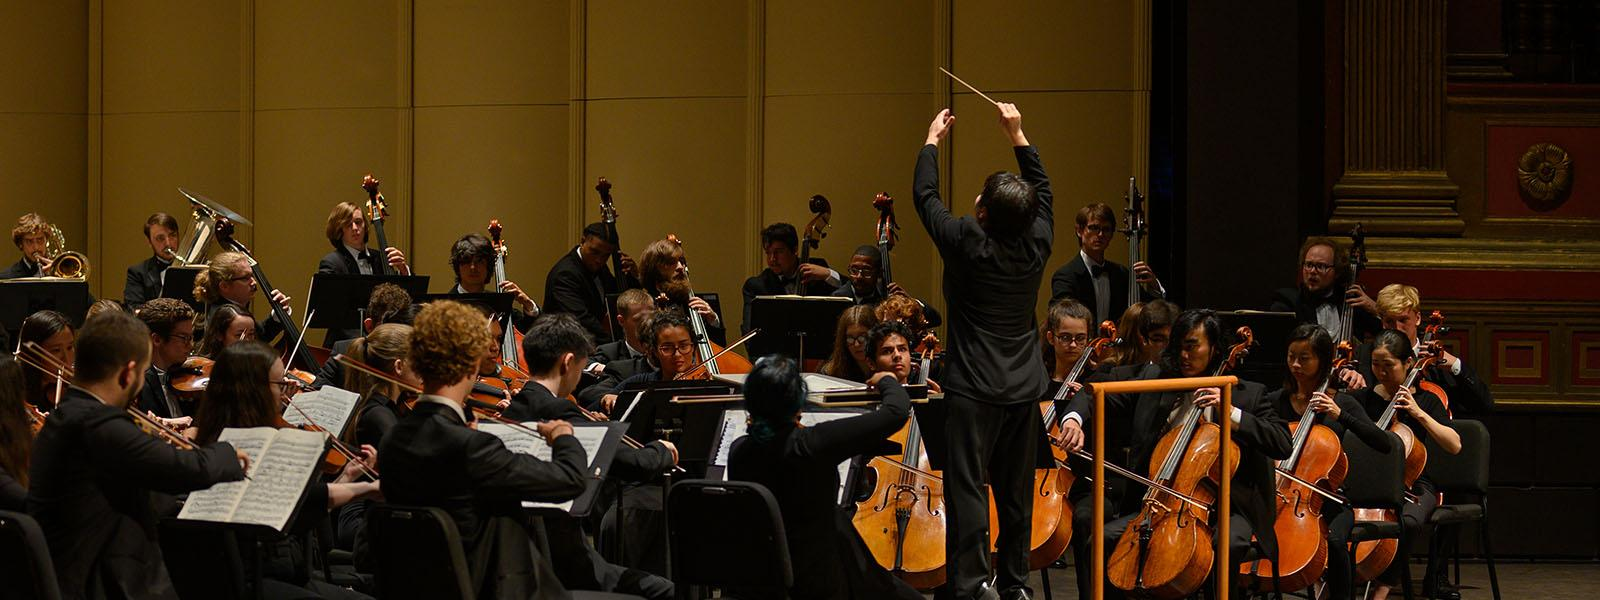 World-renowned guest conductor Xian Zhang leading the UNCSA Symphony Orchestra / photo: Peter J. Mueller